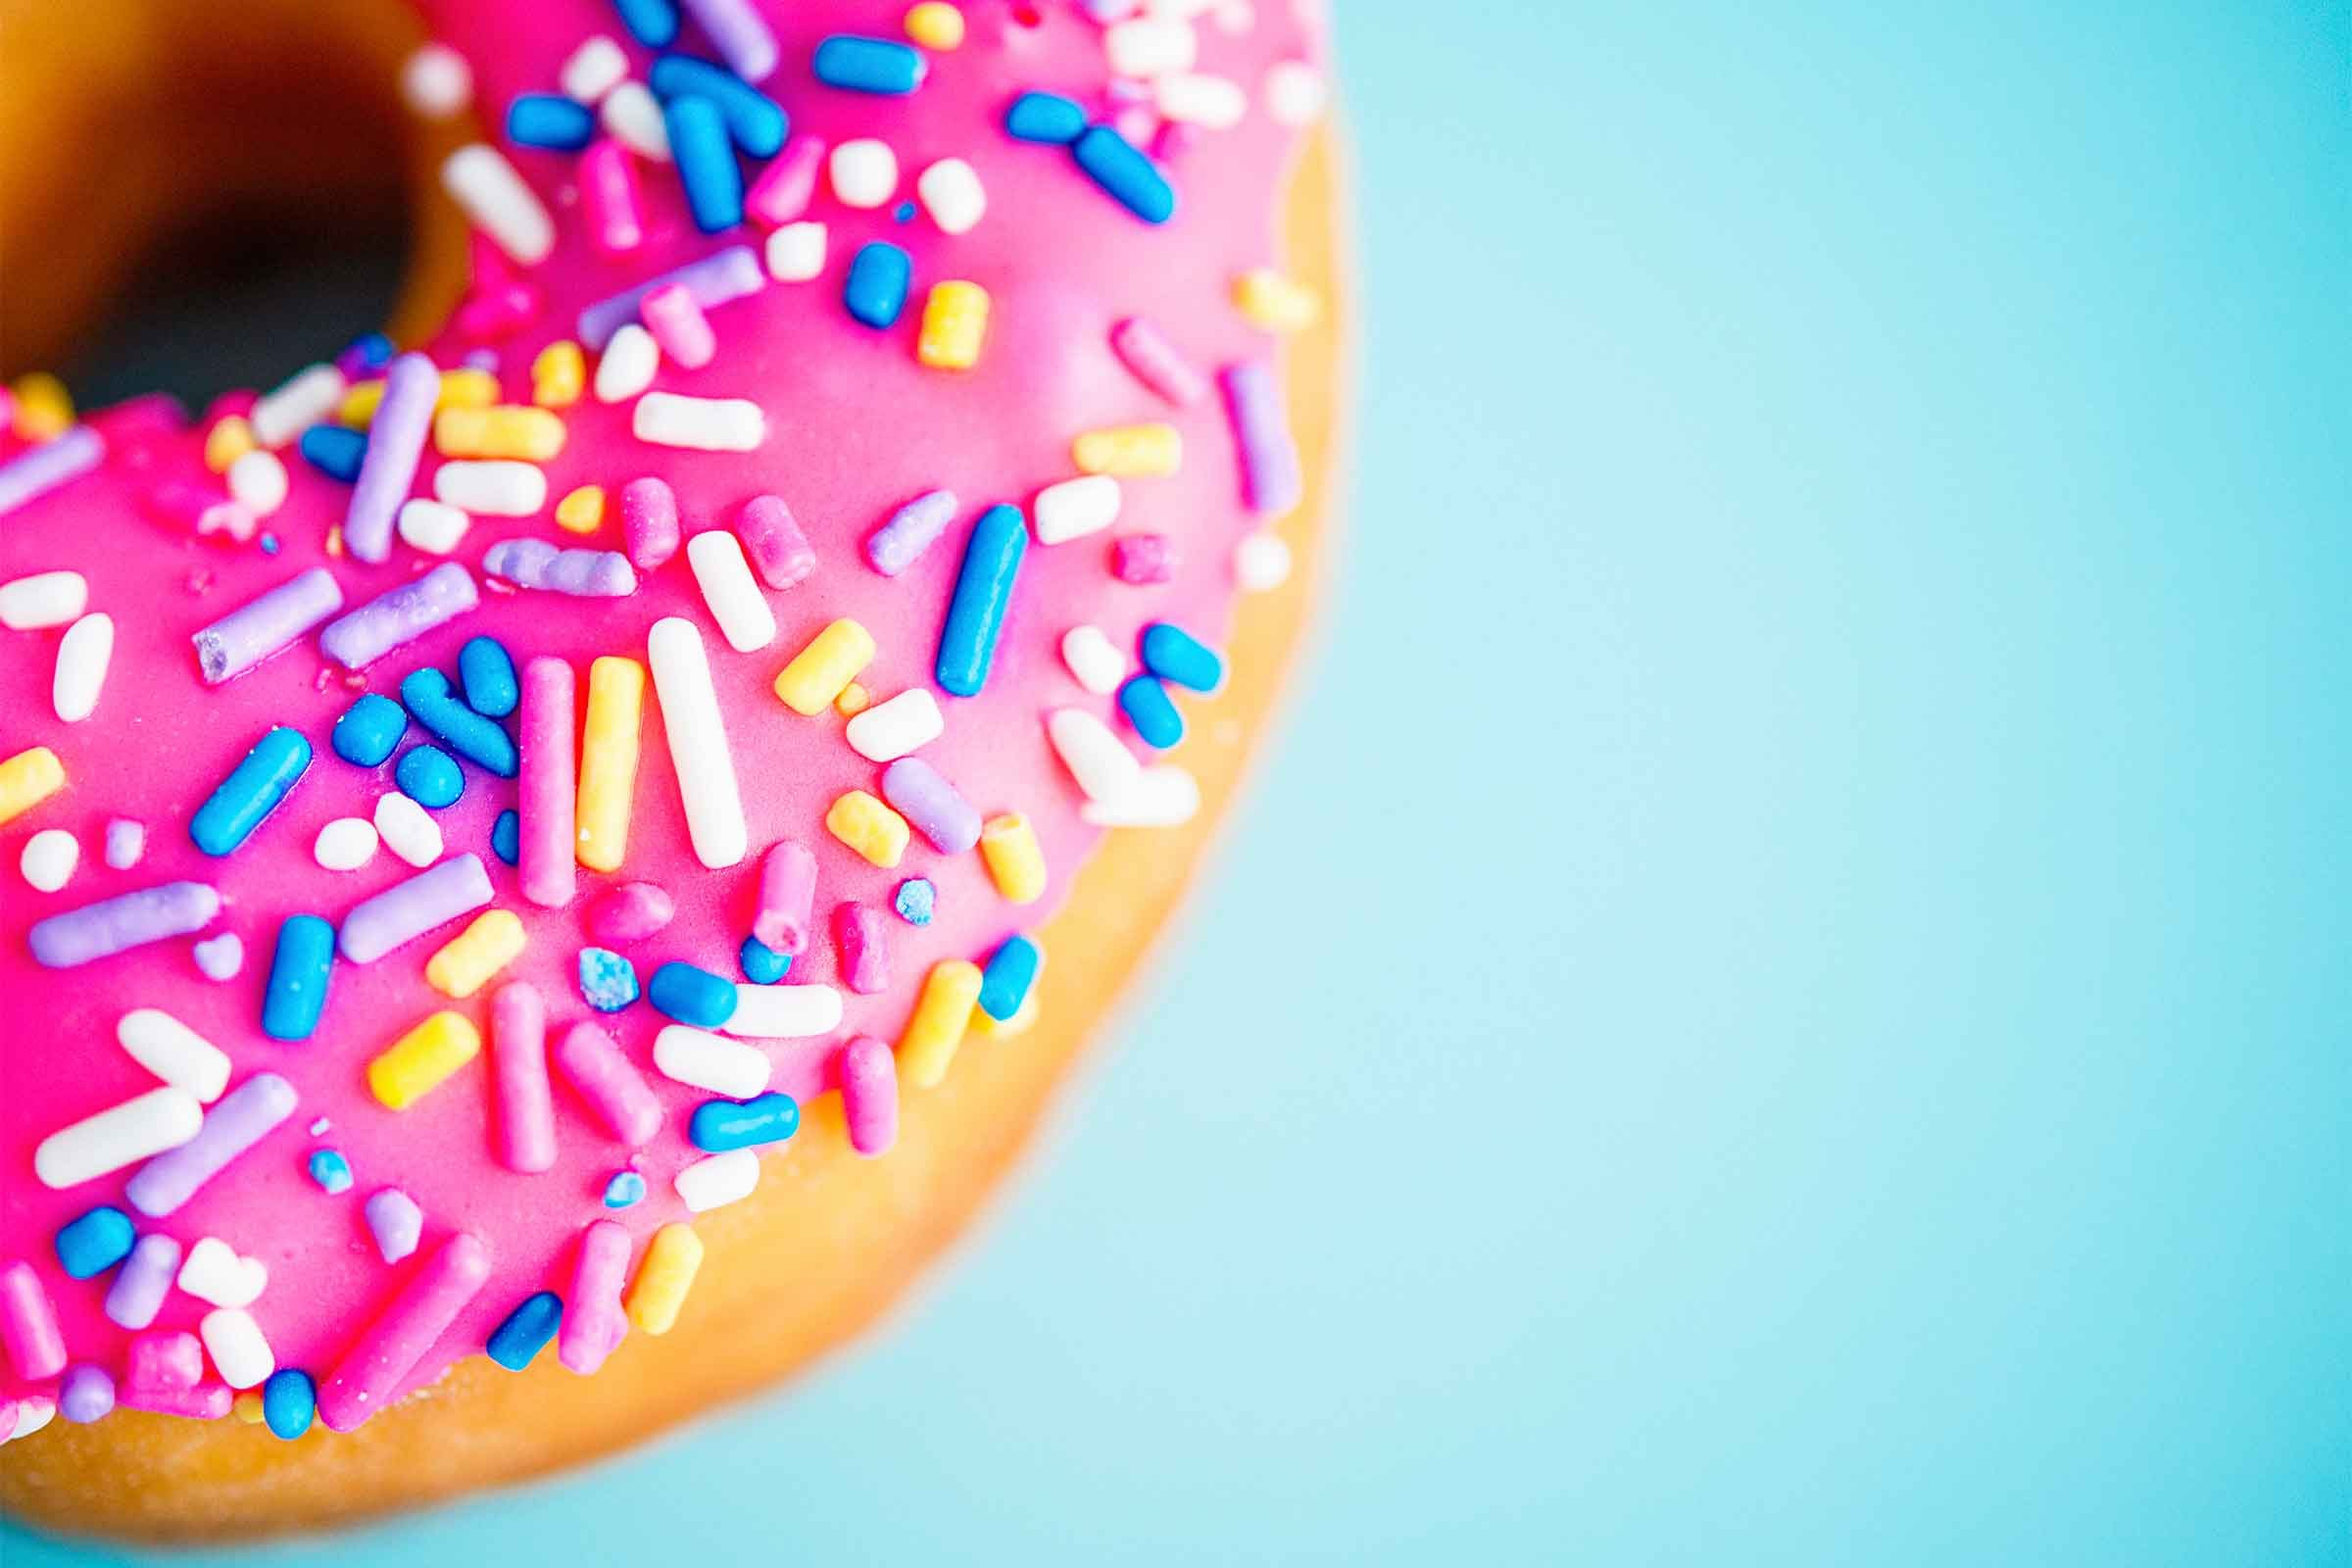 Donut with colourful sprinkles